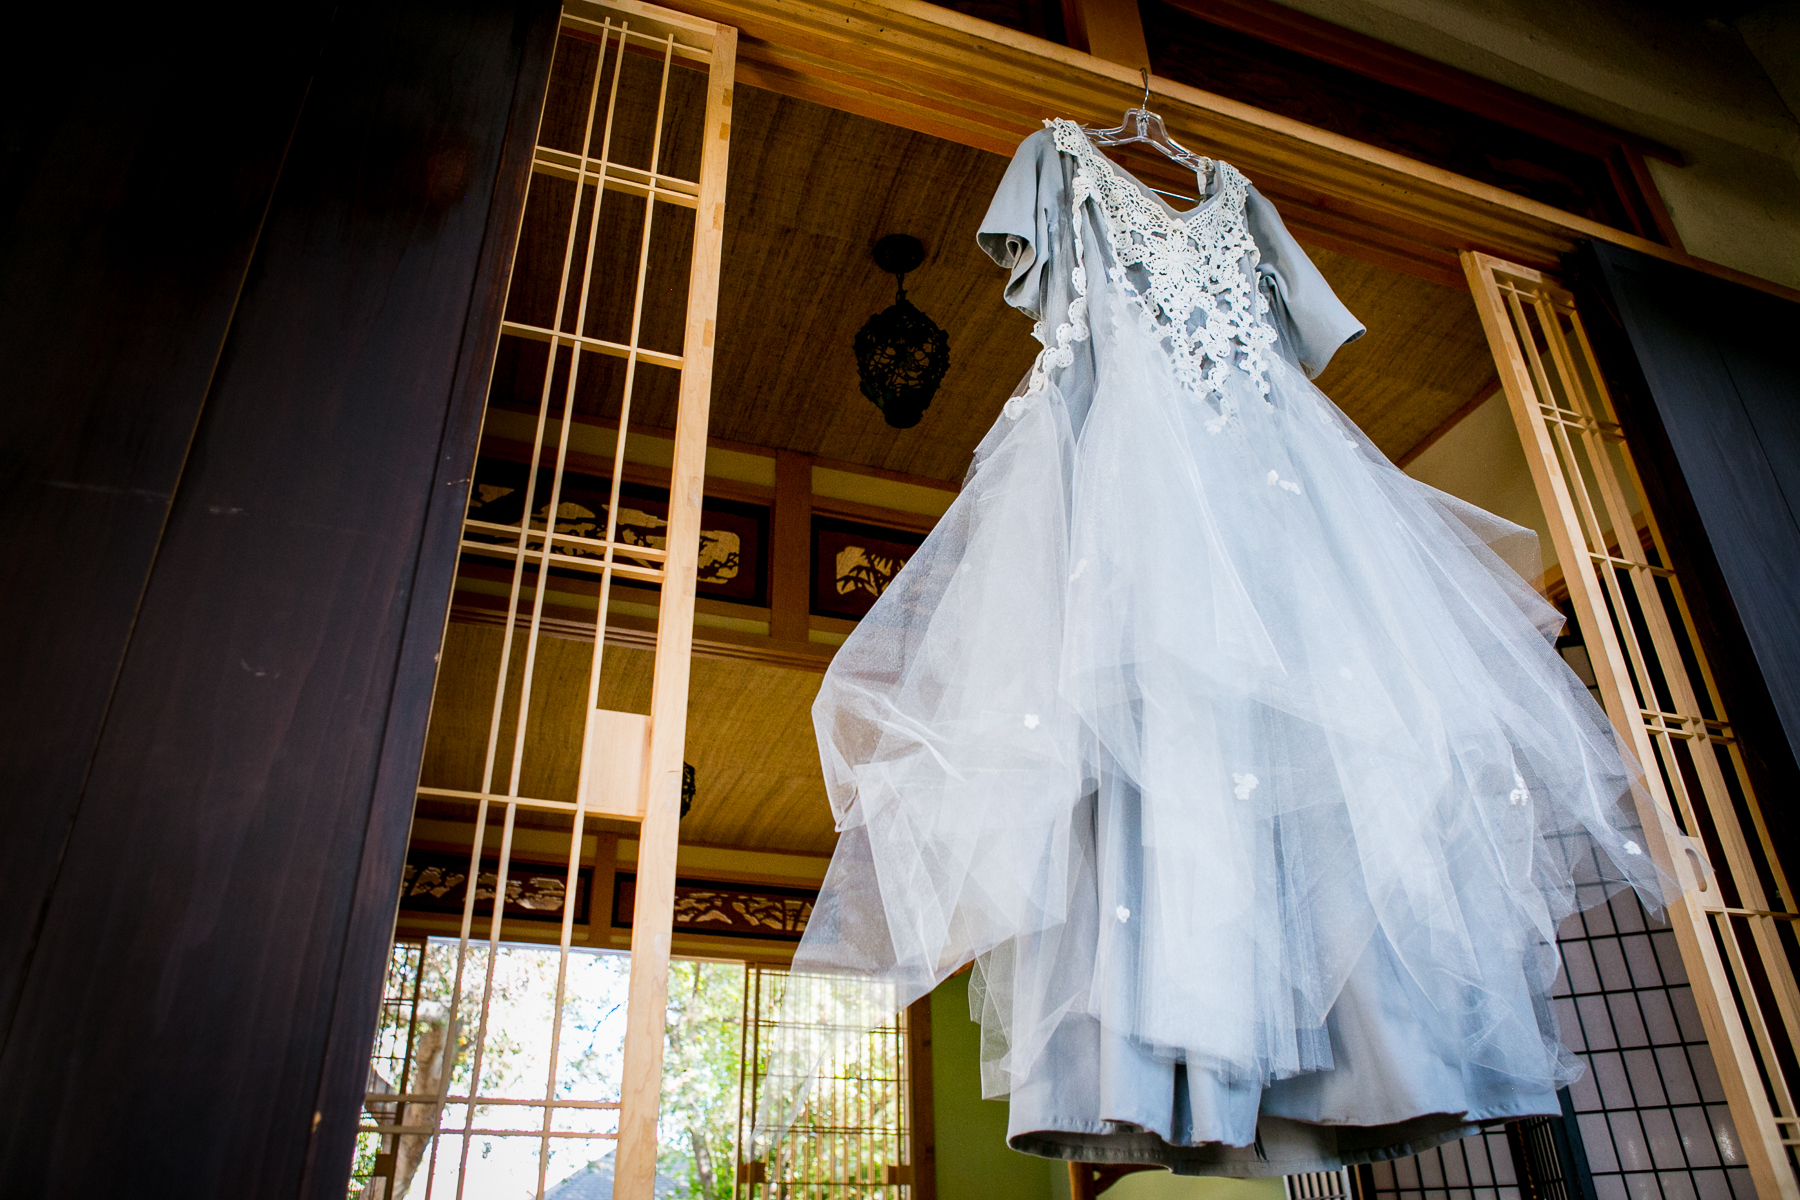 bride's hand crafted wedding dress hangs from storrier stearns teahouse wedding photos